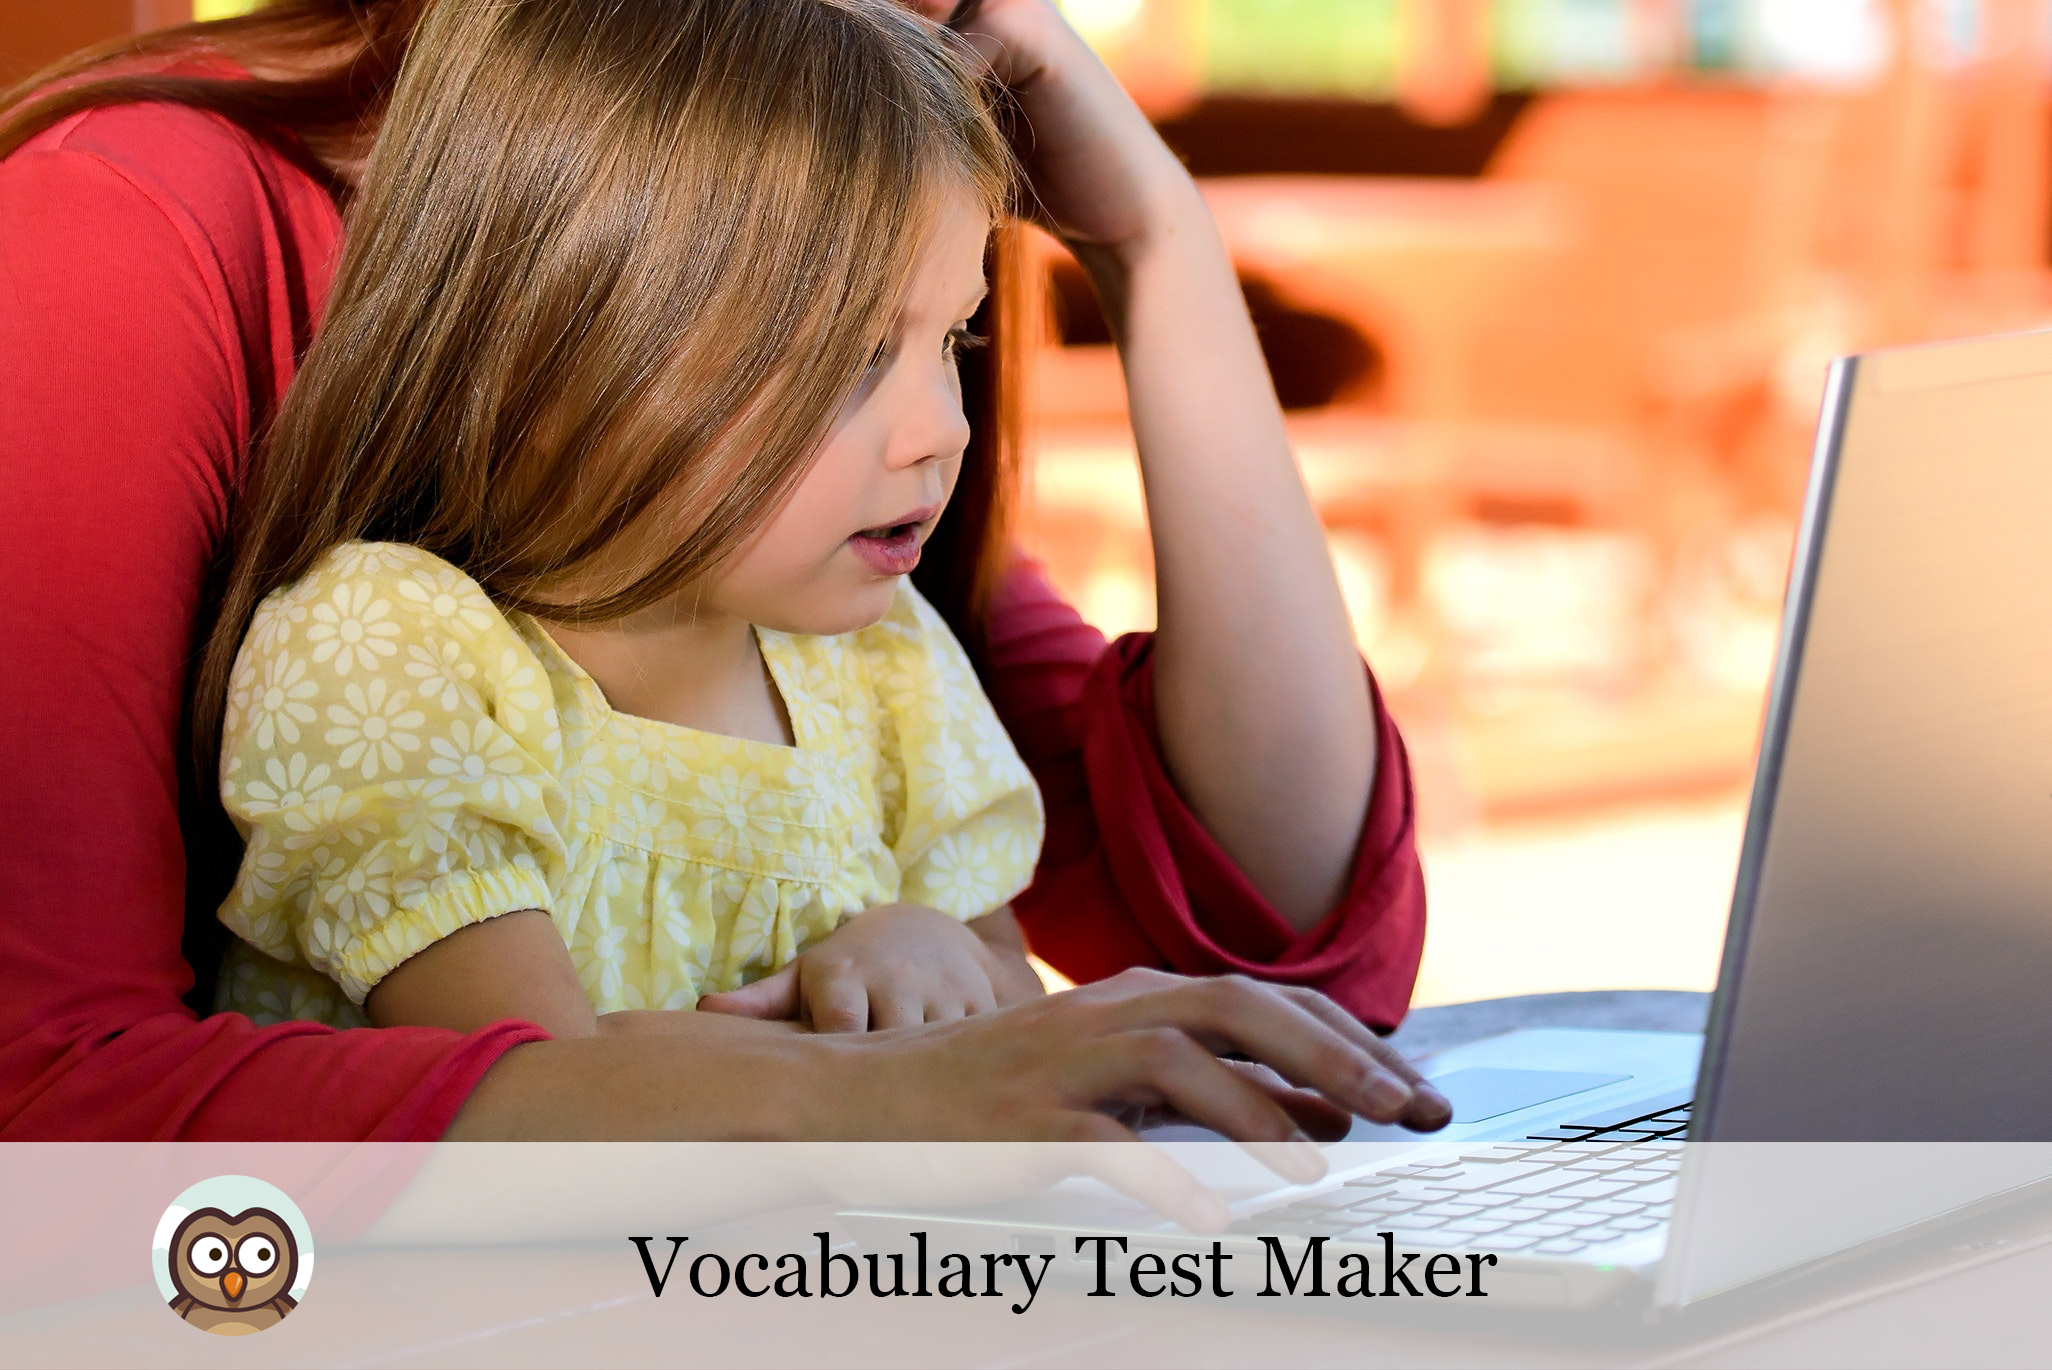 Vocabulary Test Maker